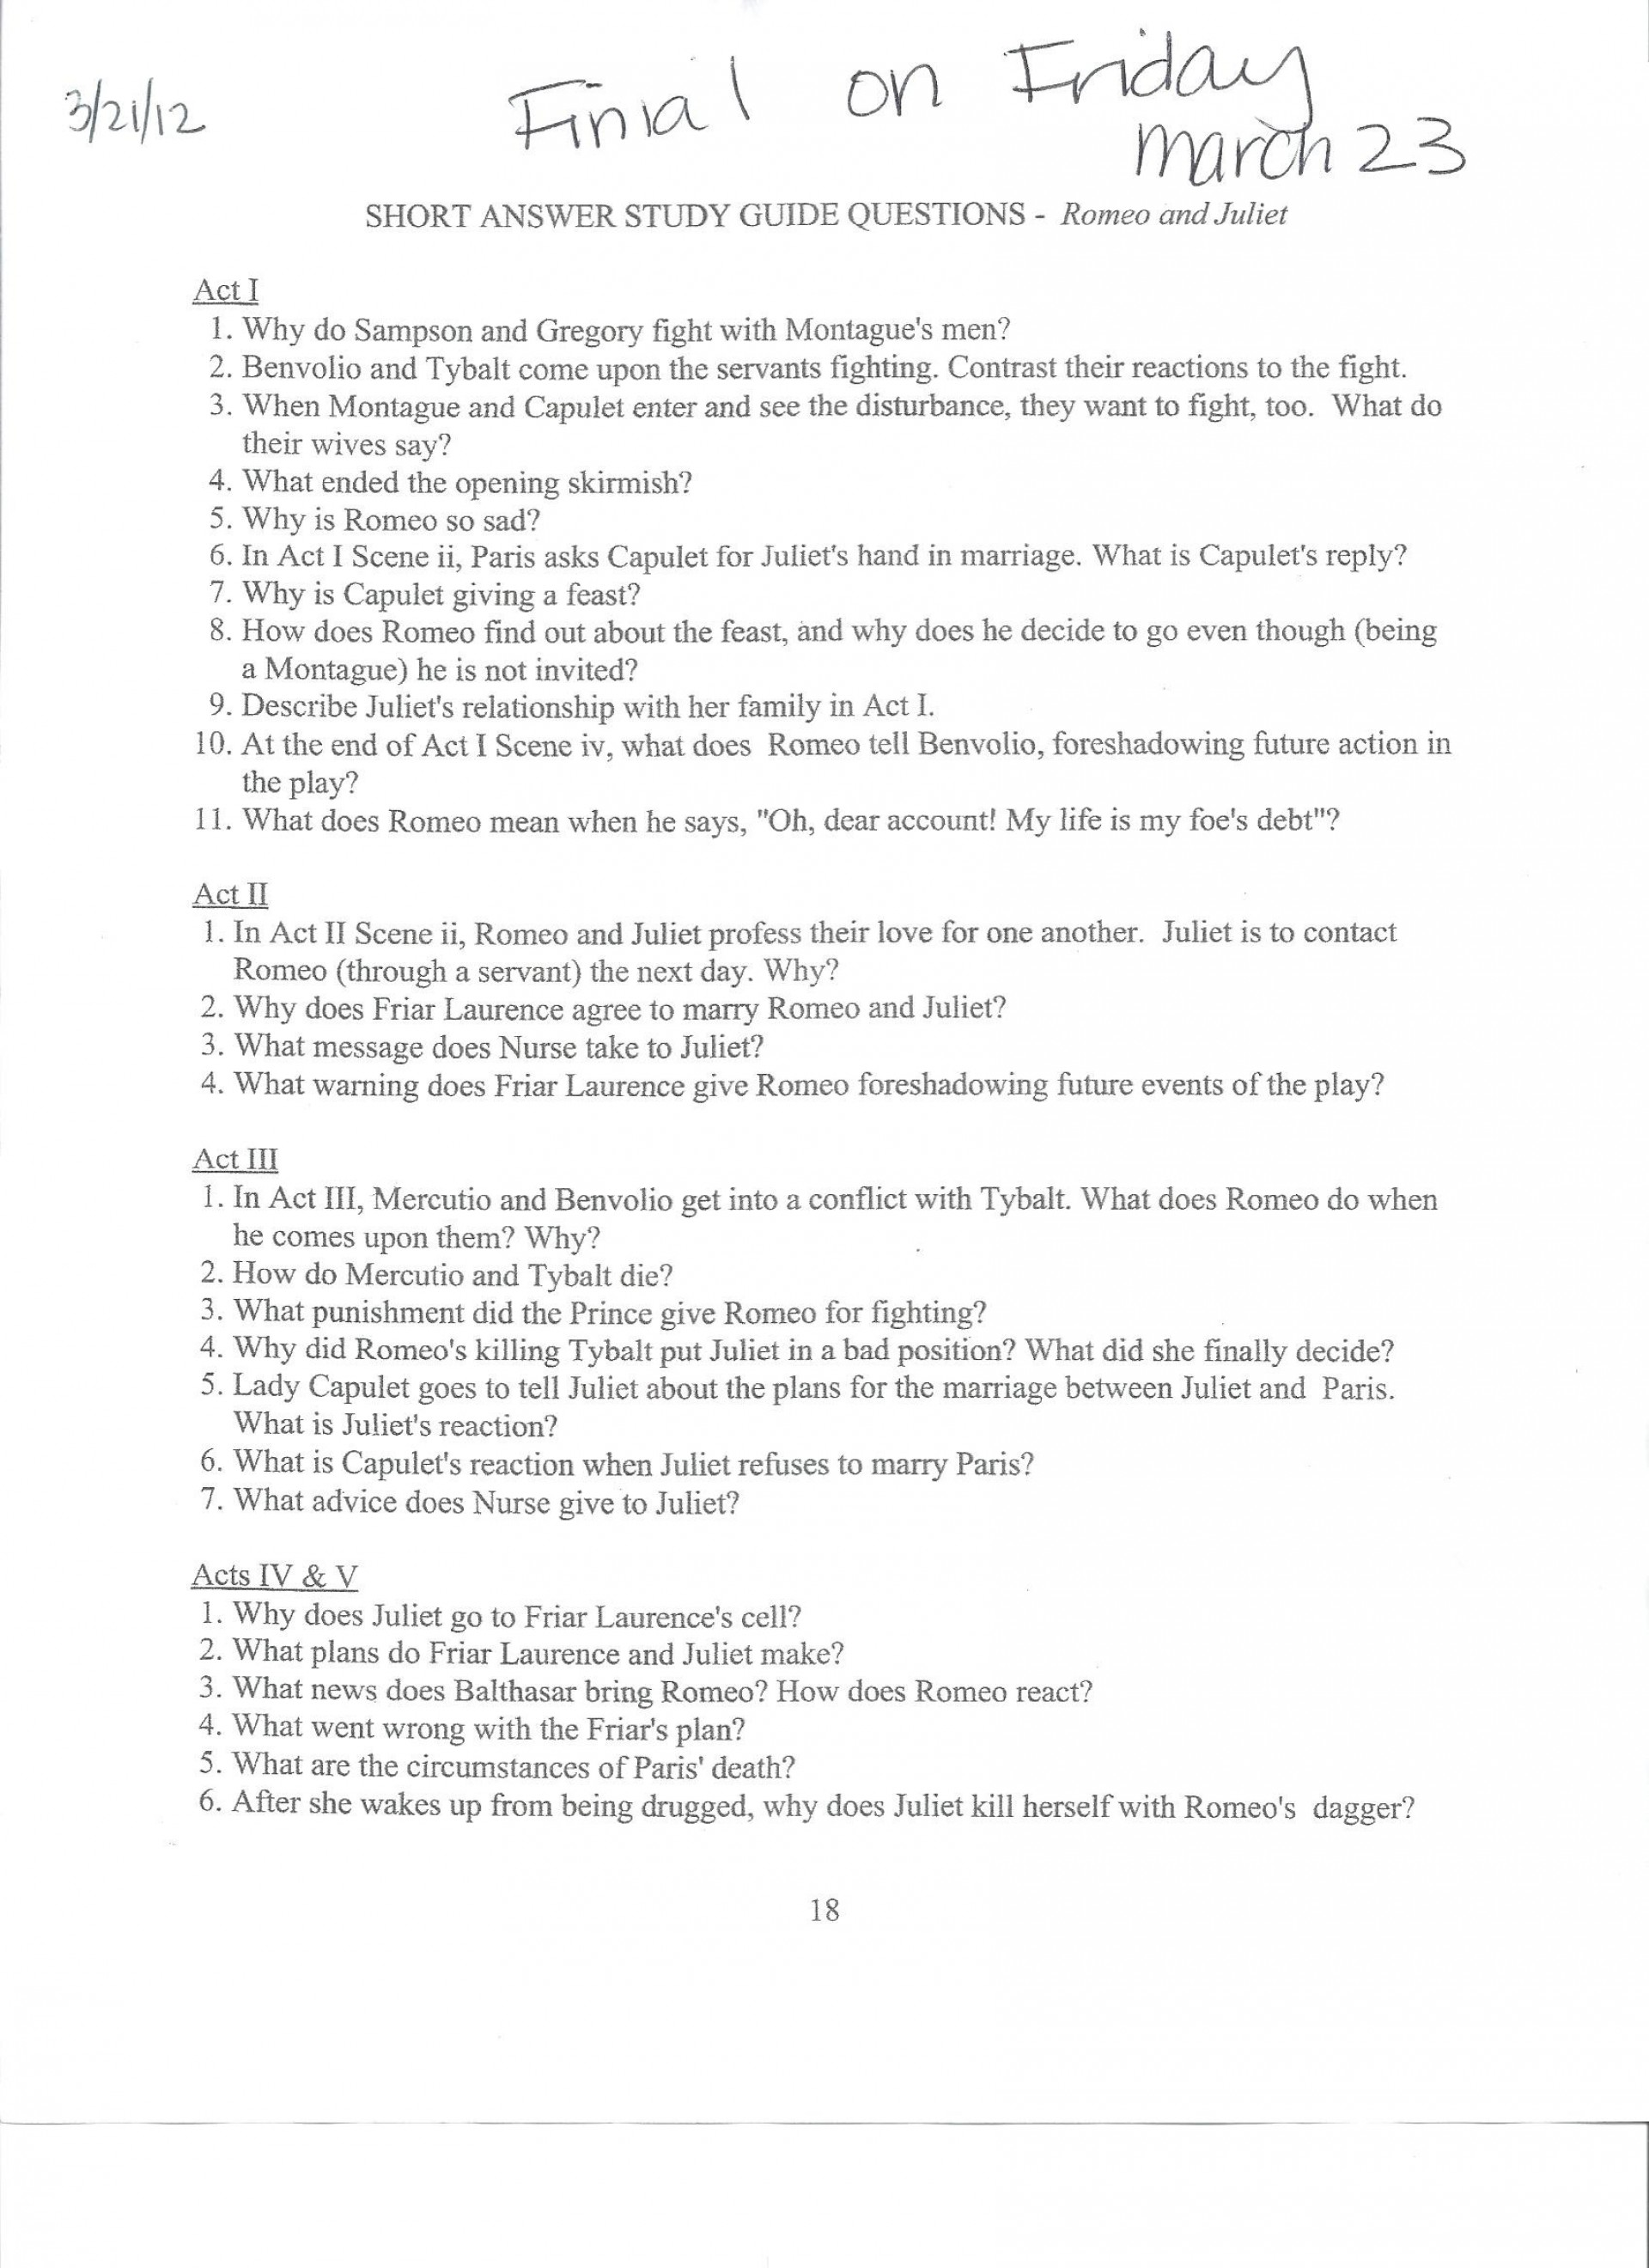 001 Essay Example English201203 21 1220romeo20and20juliet20study20guide Romeo And Juliet Astounding Topics Pdf Questions Grade 10 Answers 1920